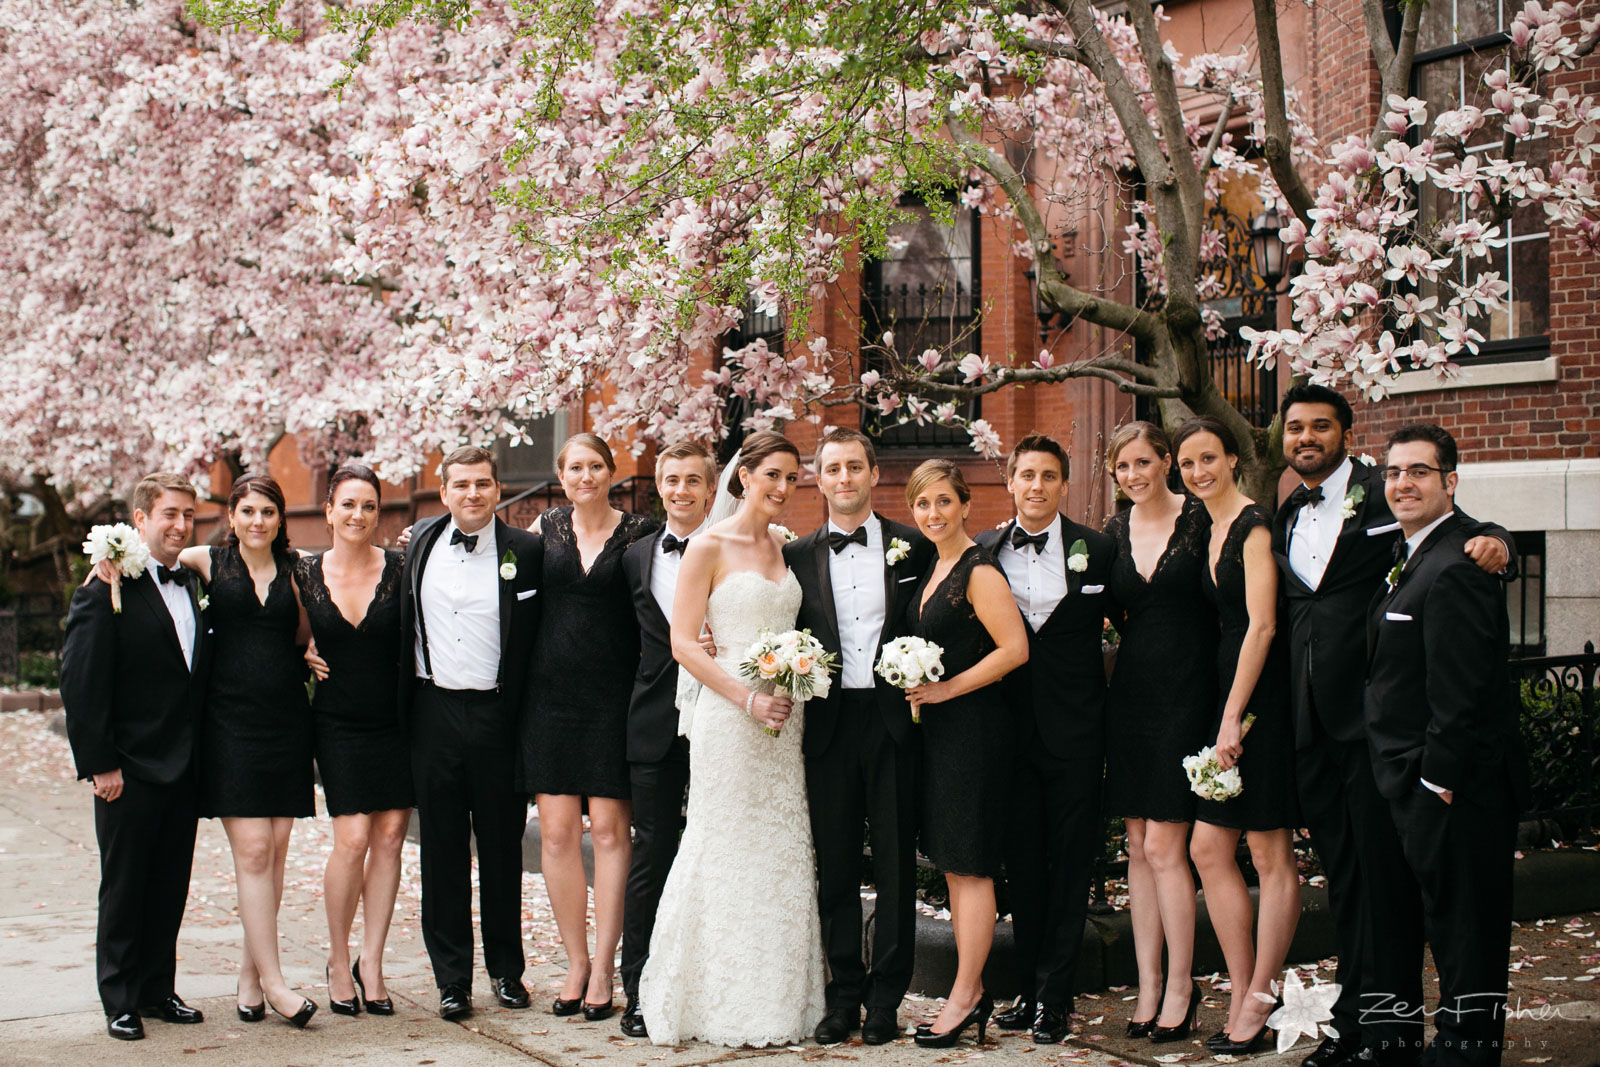 Formal bridal party portrait in front of Boston brownstones, blooming magnolia trees in springtime.